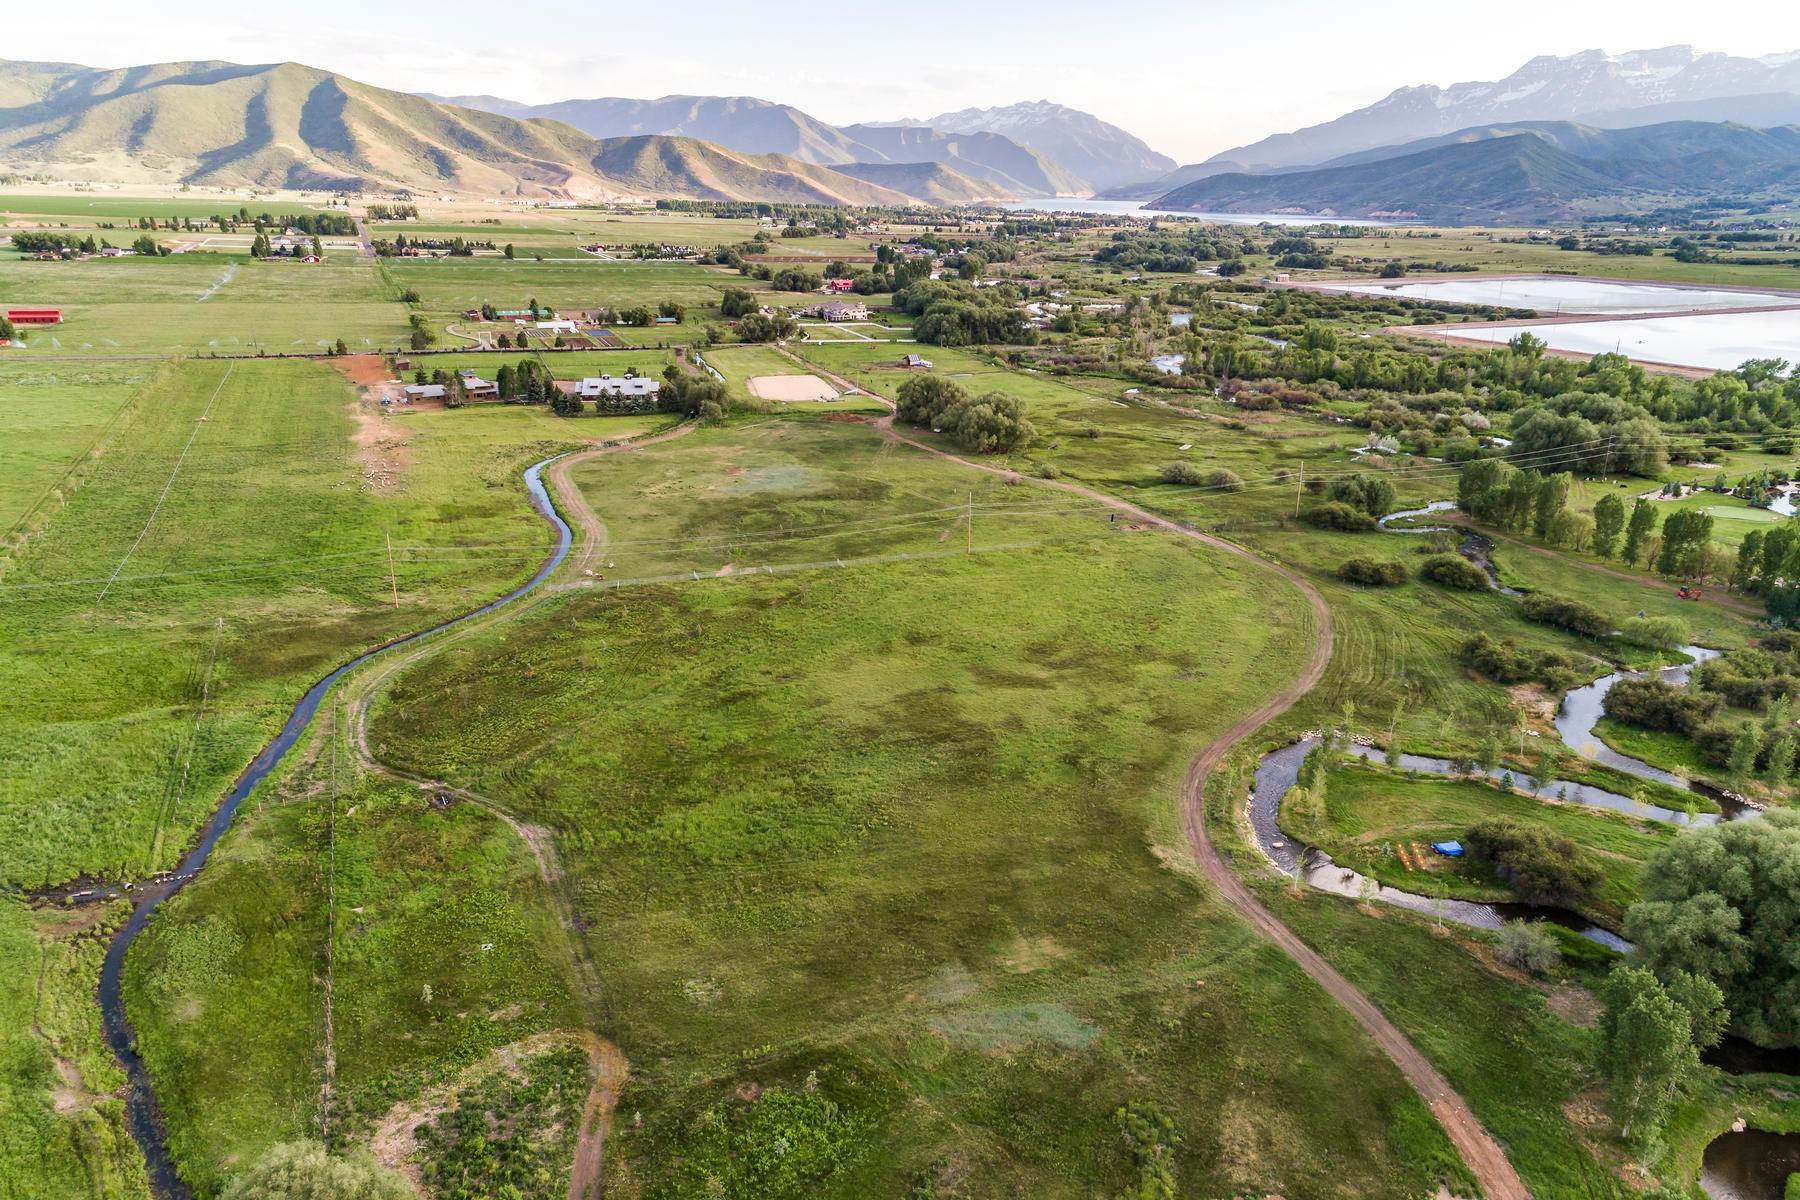 Land for Sale at Stunning Views of Mount Timpanogos on This Beautiful Building Lot 1500 W Midway Lane, #8 Heber, Utah 84032 United States